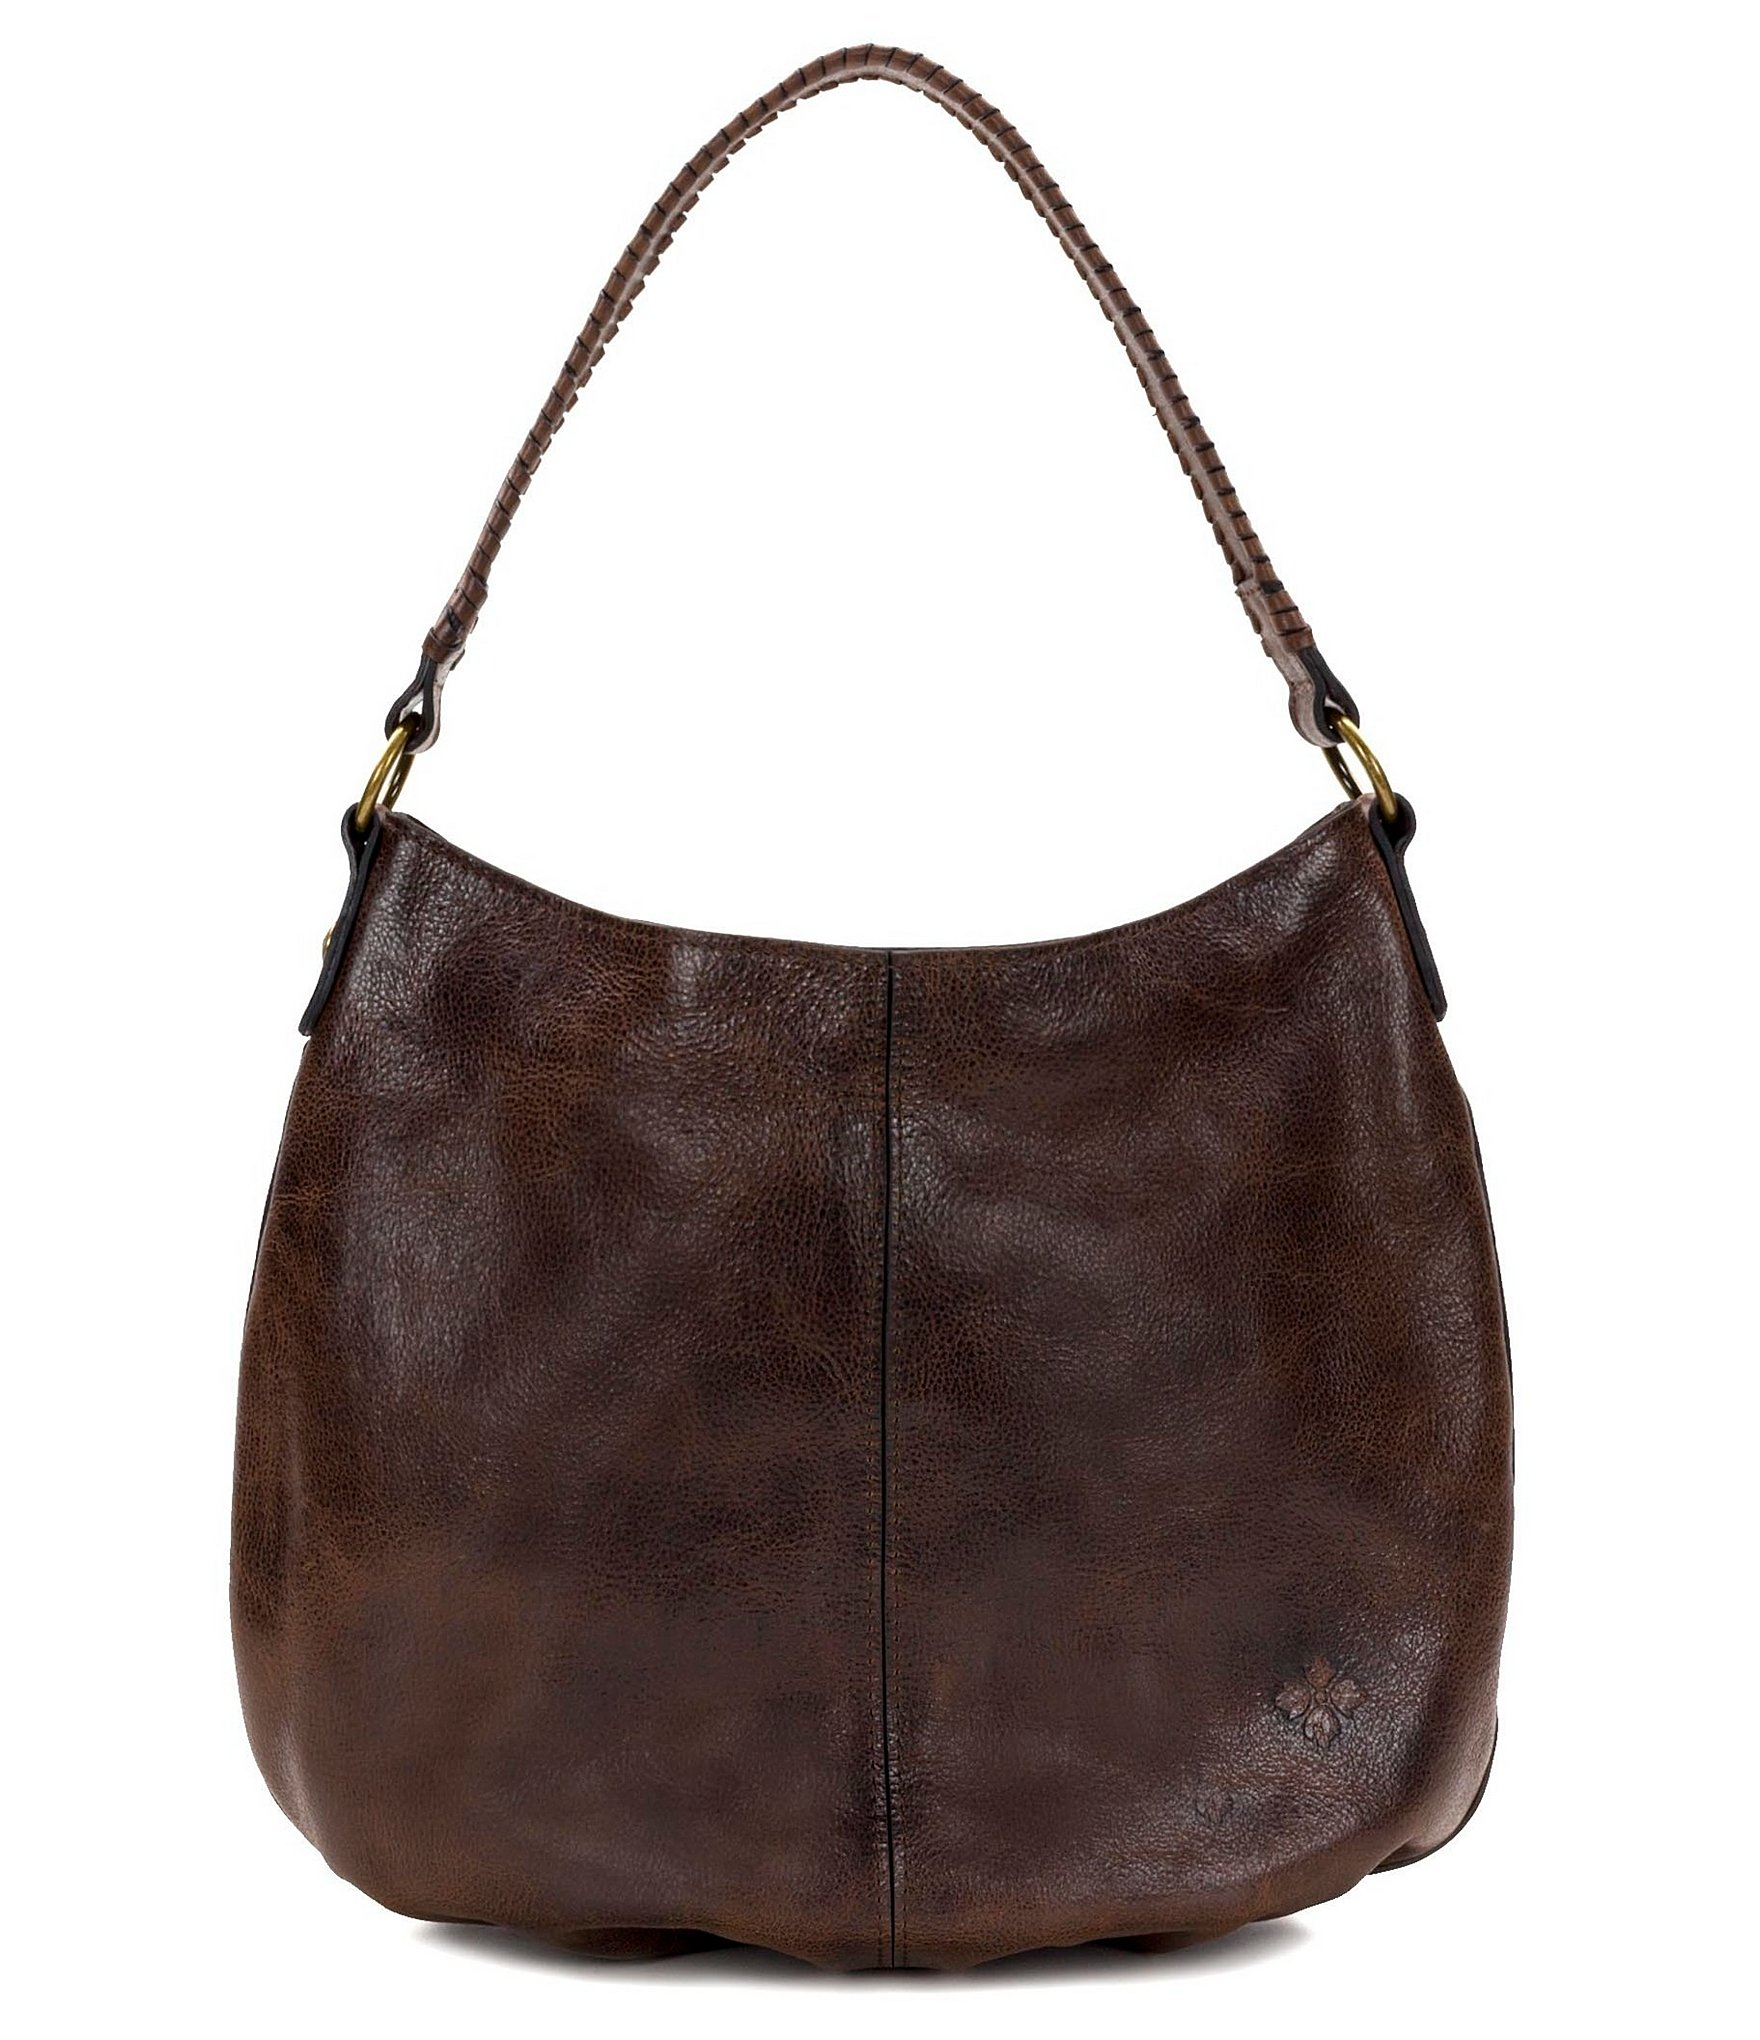 hobo bag hobo bags | dillards atcjhan